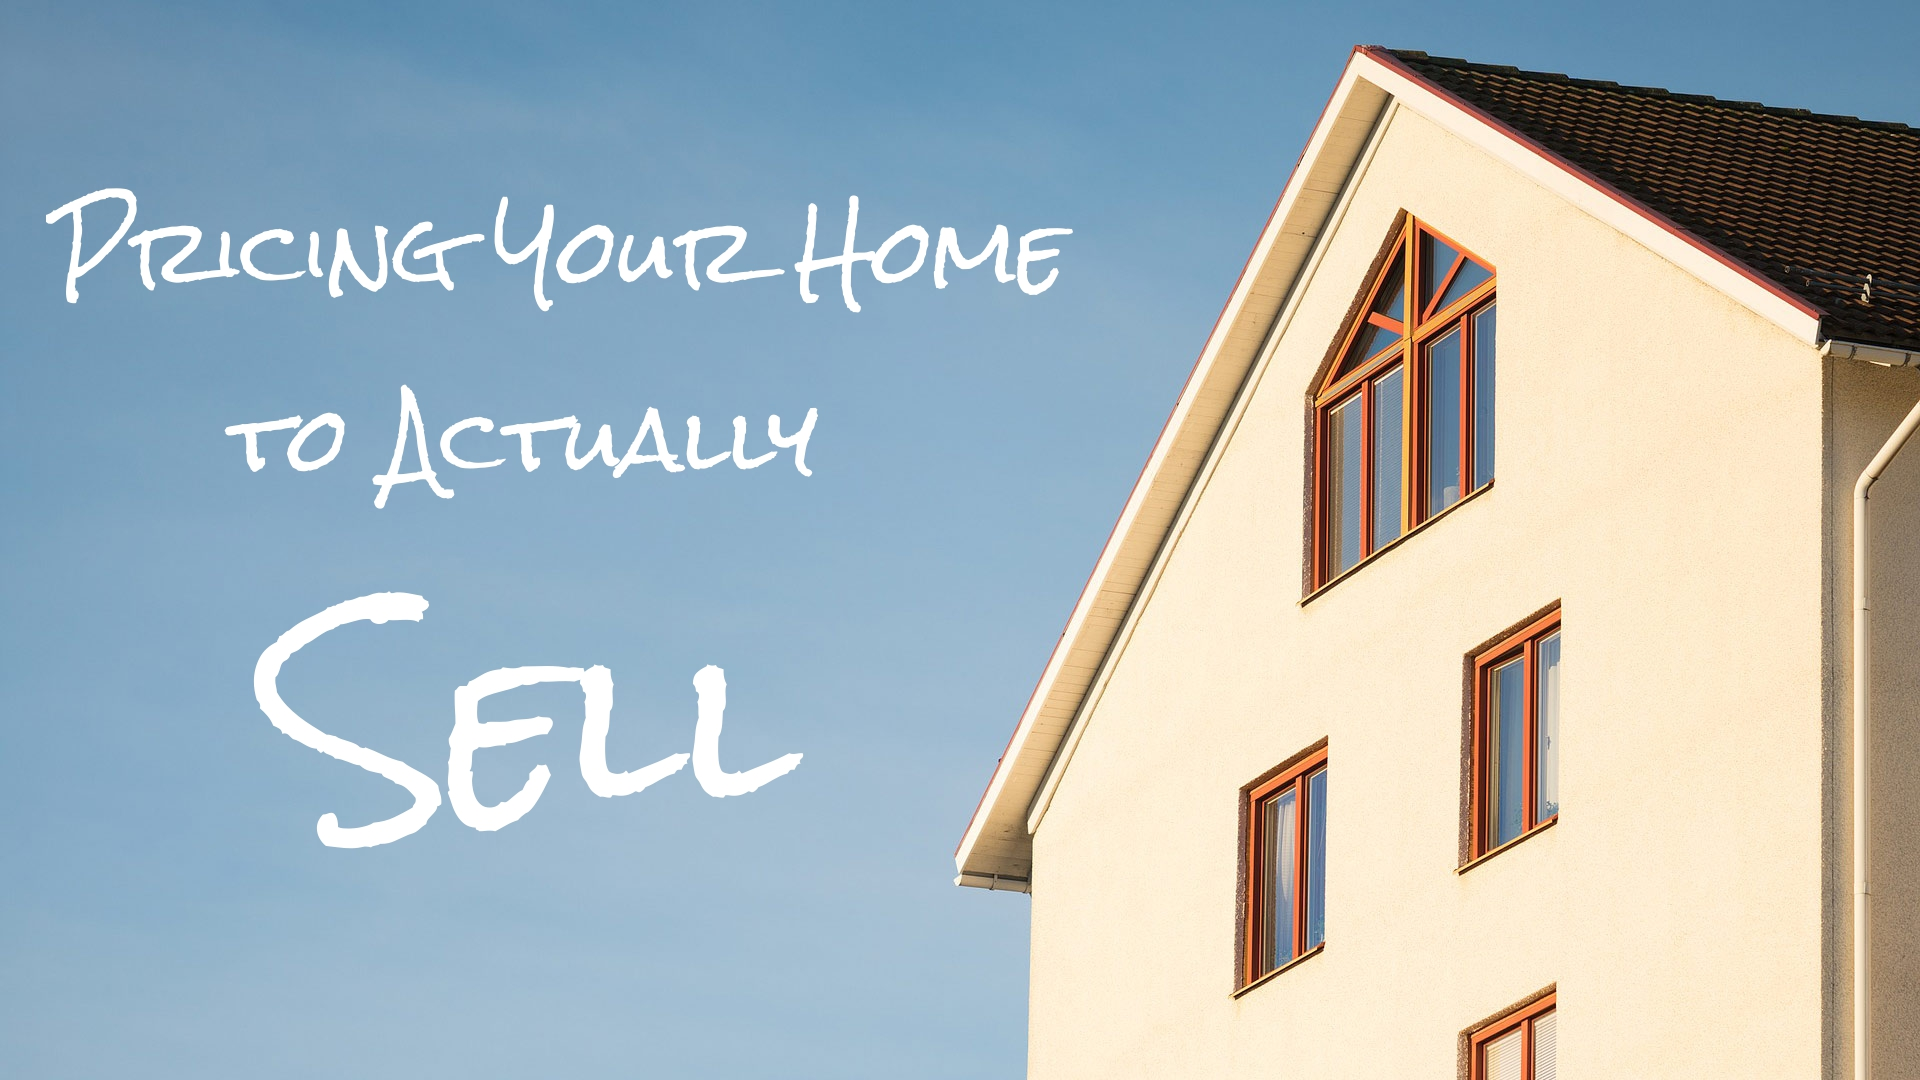 Pricing your home to sell